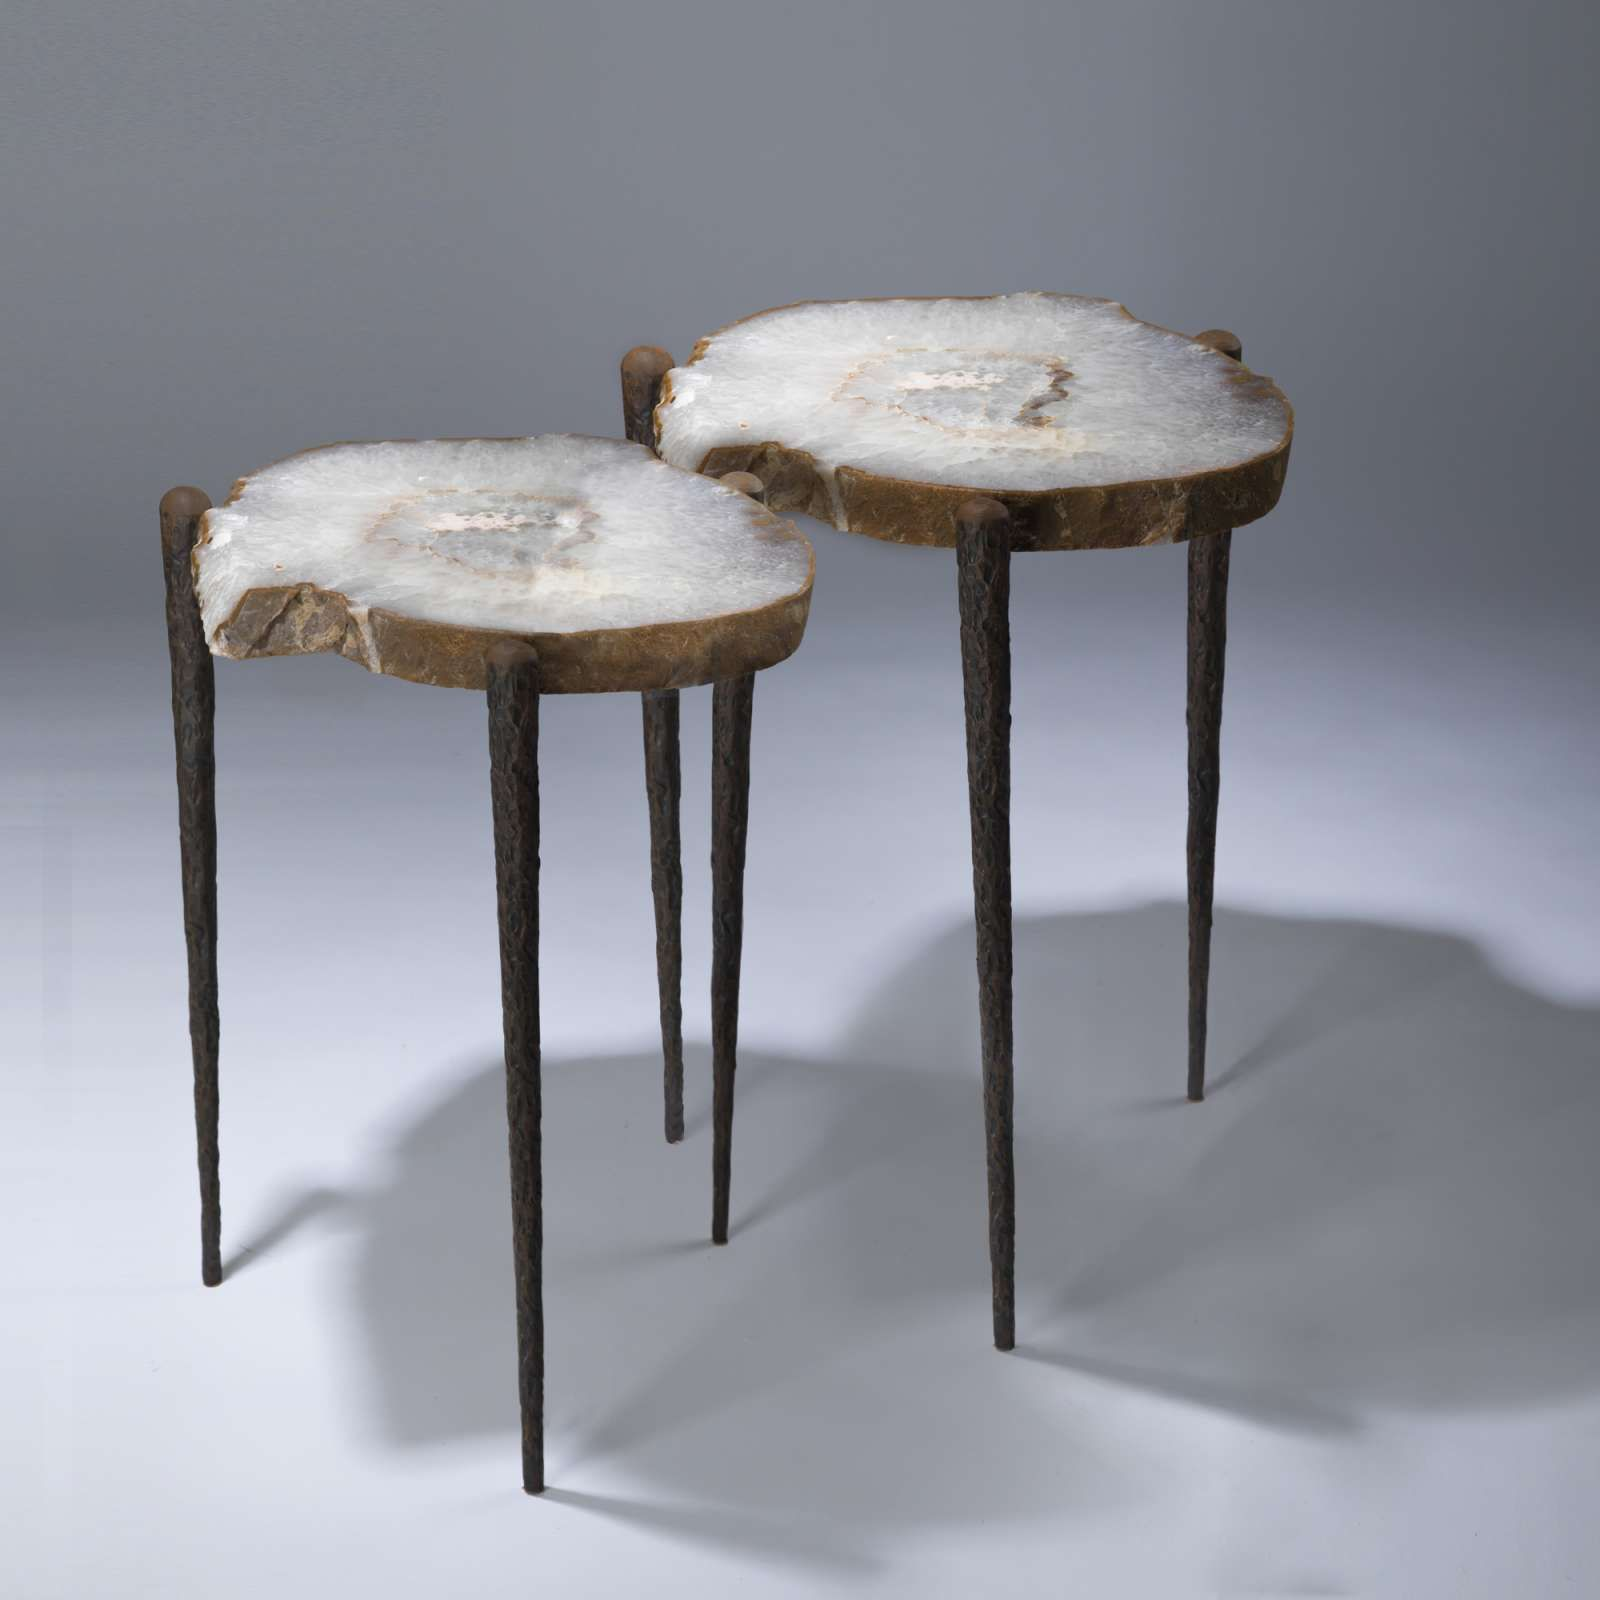 Pair Of Agate Slices On Tapered Giacometti Inspired Three Leg Table